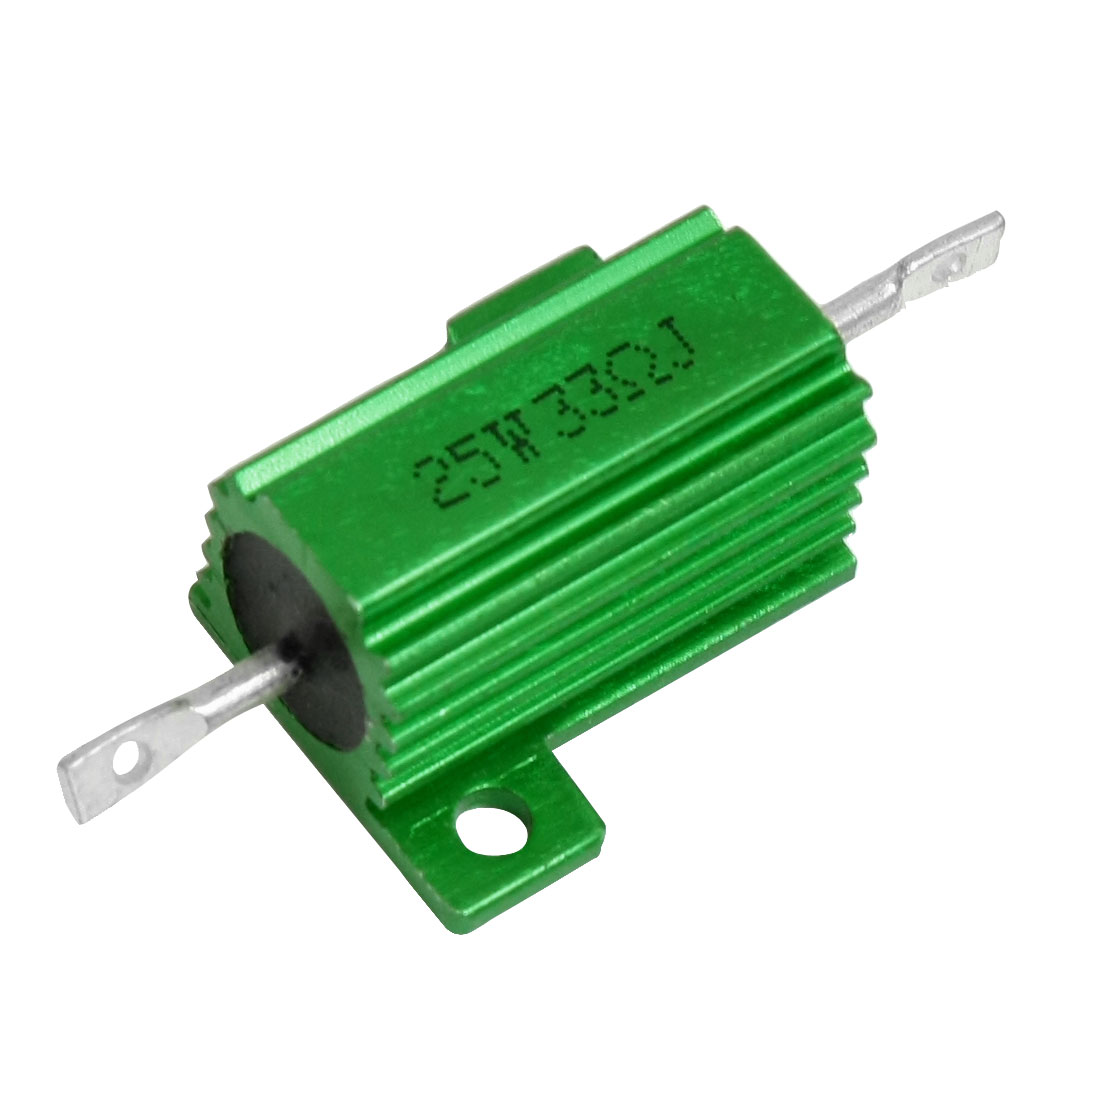 25W 33 Ohm 5% Chassis Mount Wirewound Aluminum Housed Power Resistor Green